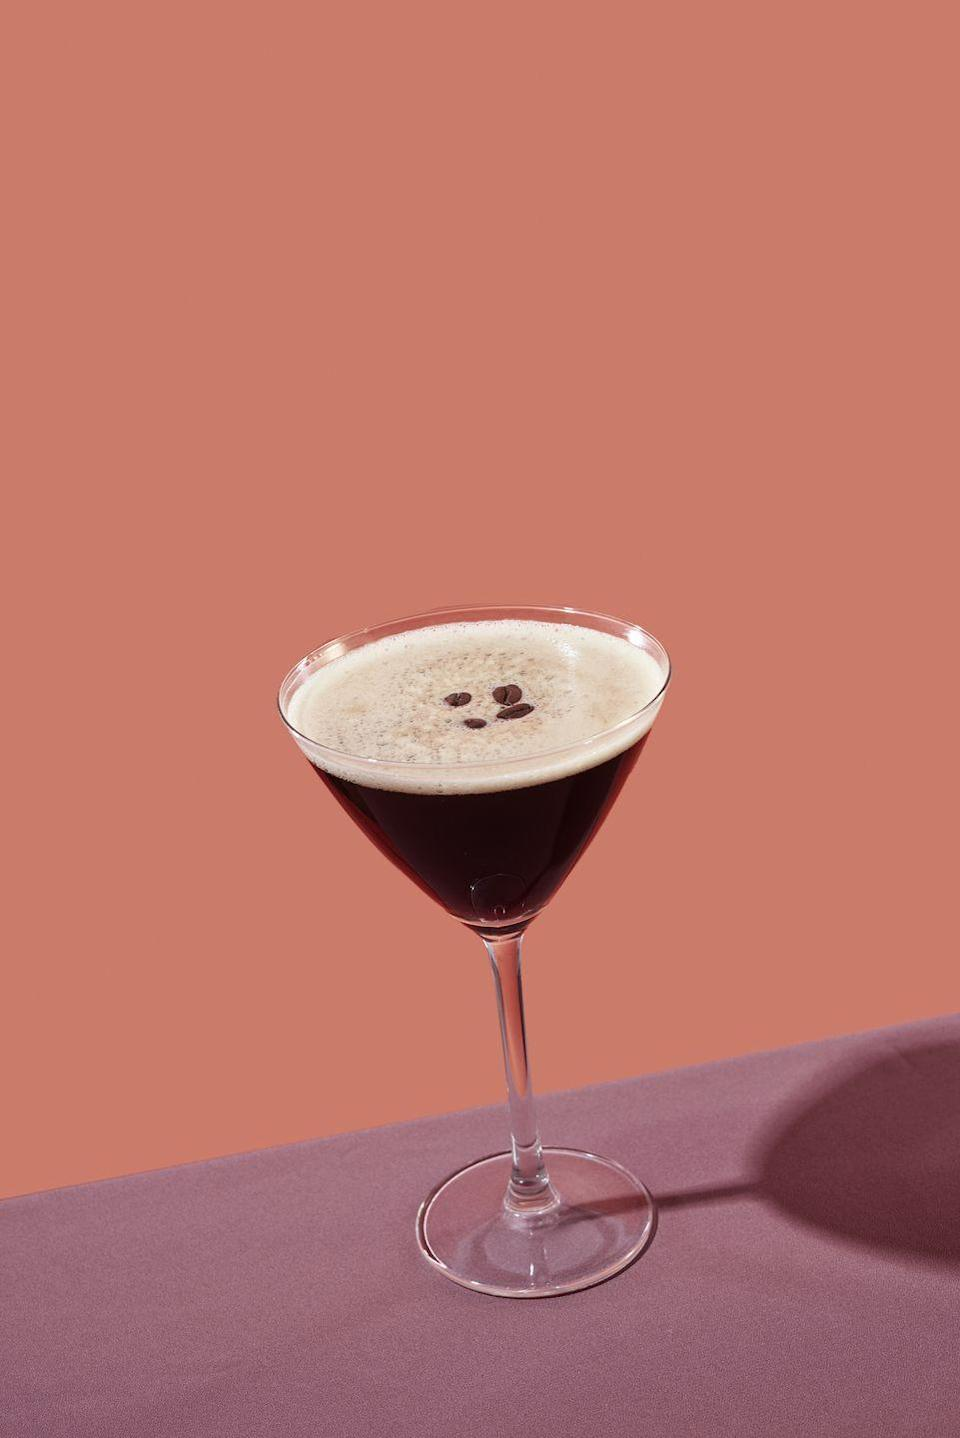 "<p>A deliciously smooth combination of caffeine, alcohol and sugar, <a href=""https://www.delish.com/uk/cocktails-drinks/a30977801/espresso-martini/"" rel=""nofollow noopener"" target=""_blank"" data-ylk=""slk:Espresso Martinis"" class=""link rapid-noclick-resp"">Espresso Martinis</a> are not for the fainthearted. Relatively new to the scene - created in the 1980s and made popular in even more recent years - if this is your cocktail of choice you are likely an intense individual who gives 100% to everything you do. Espresso Martini drinks have a 'work hard, play hard' attitude and are happy to take the lead in both professional and social situations.</p>"